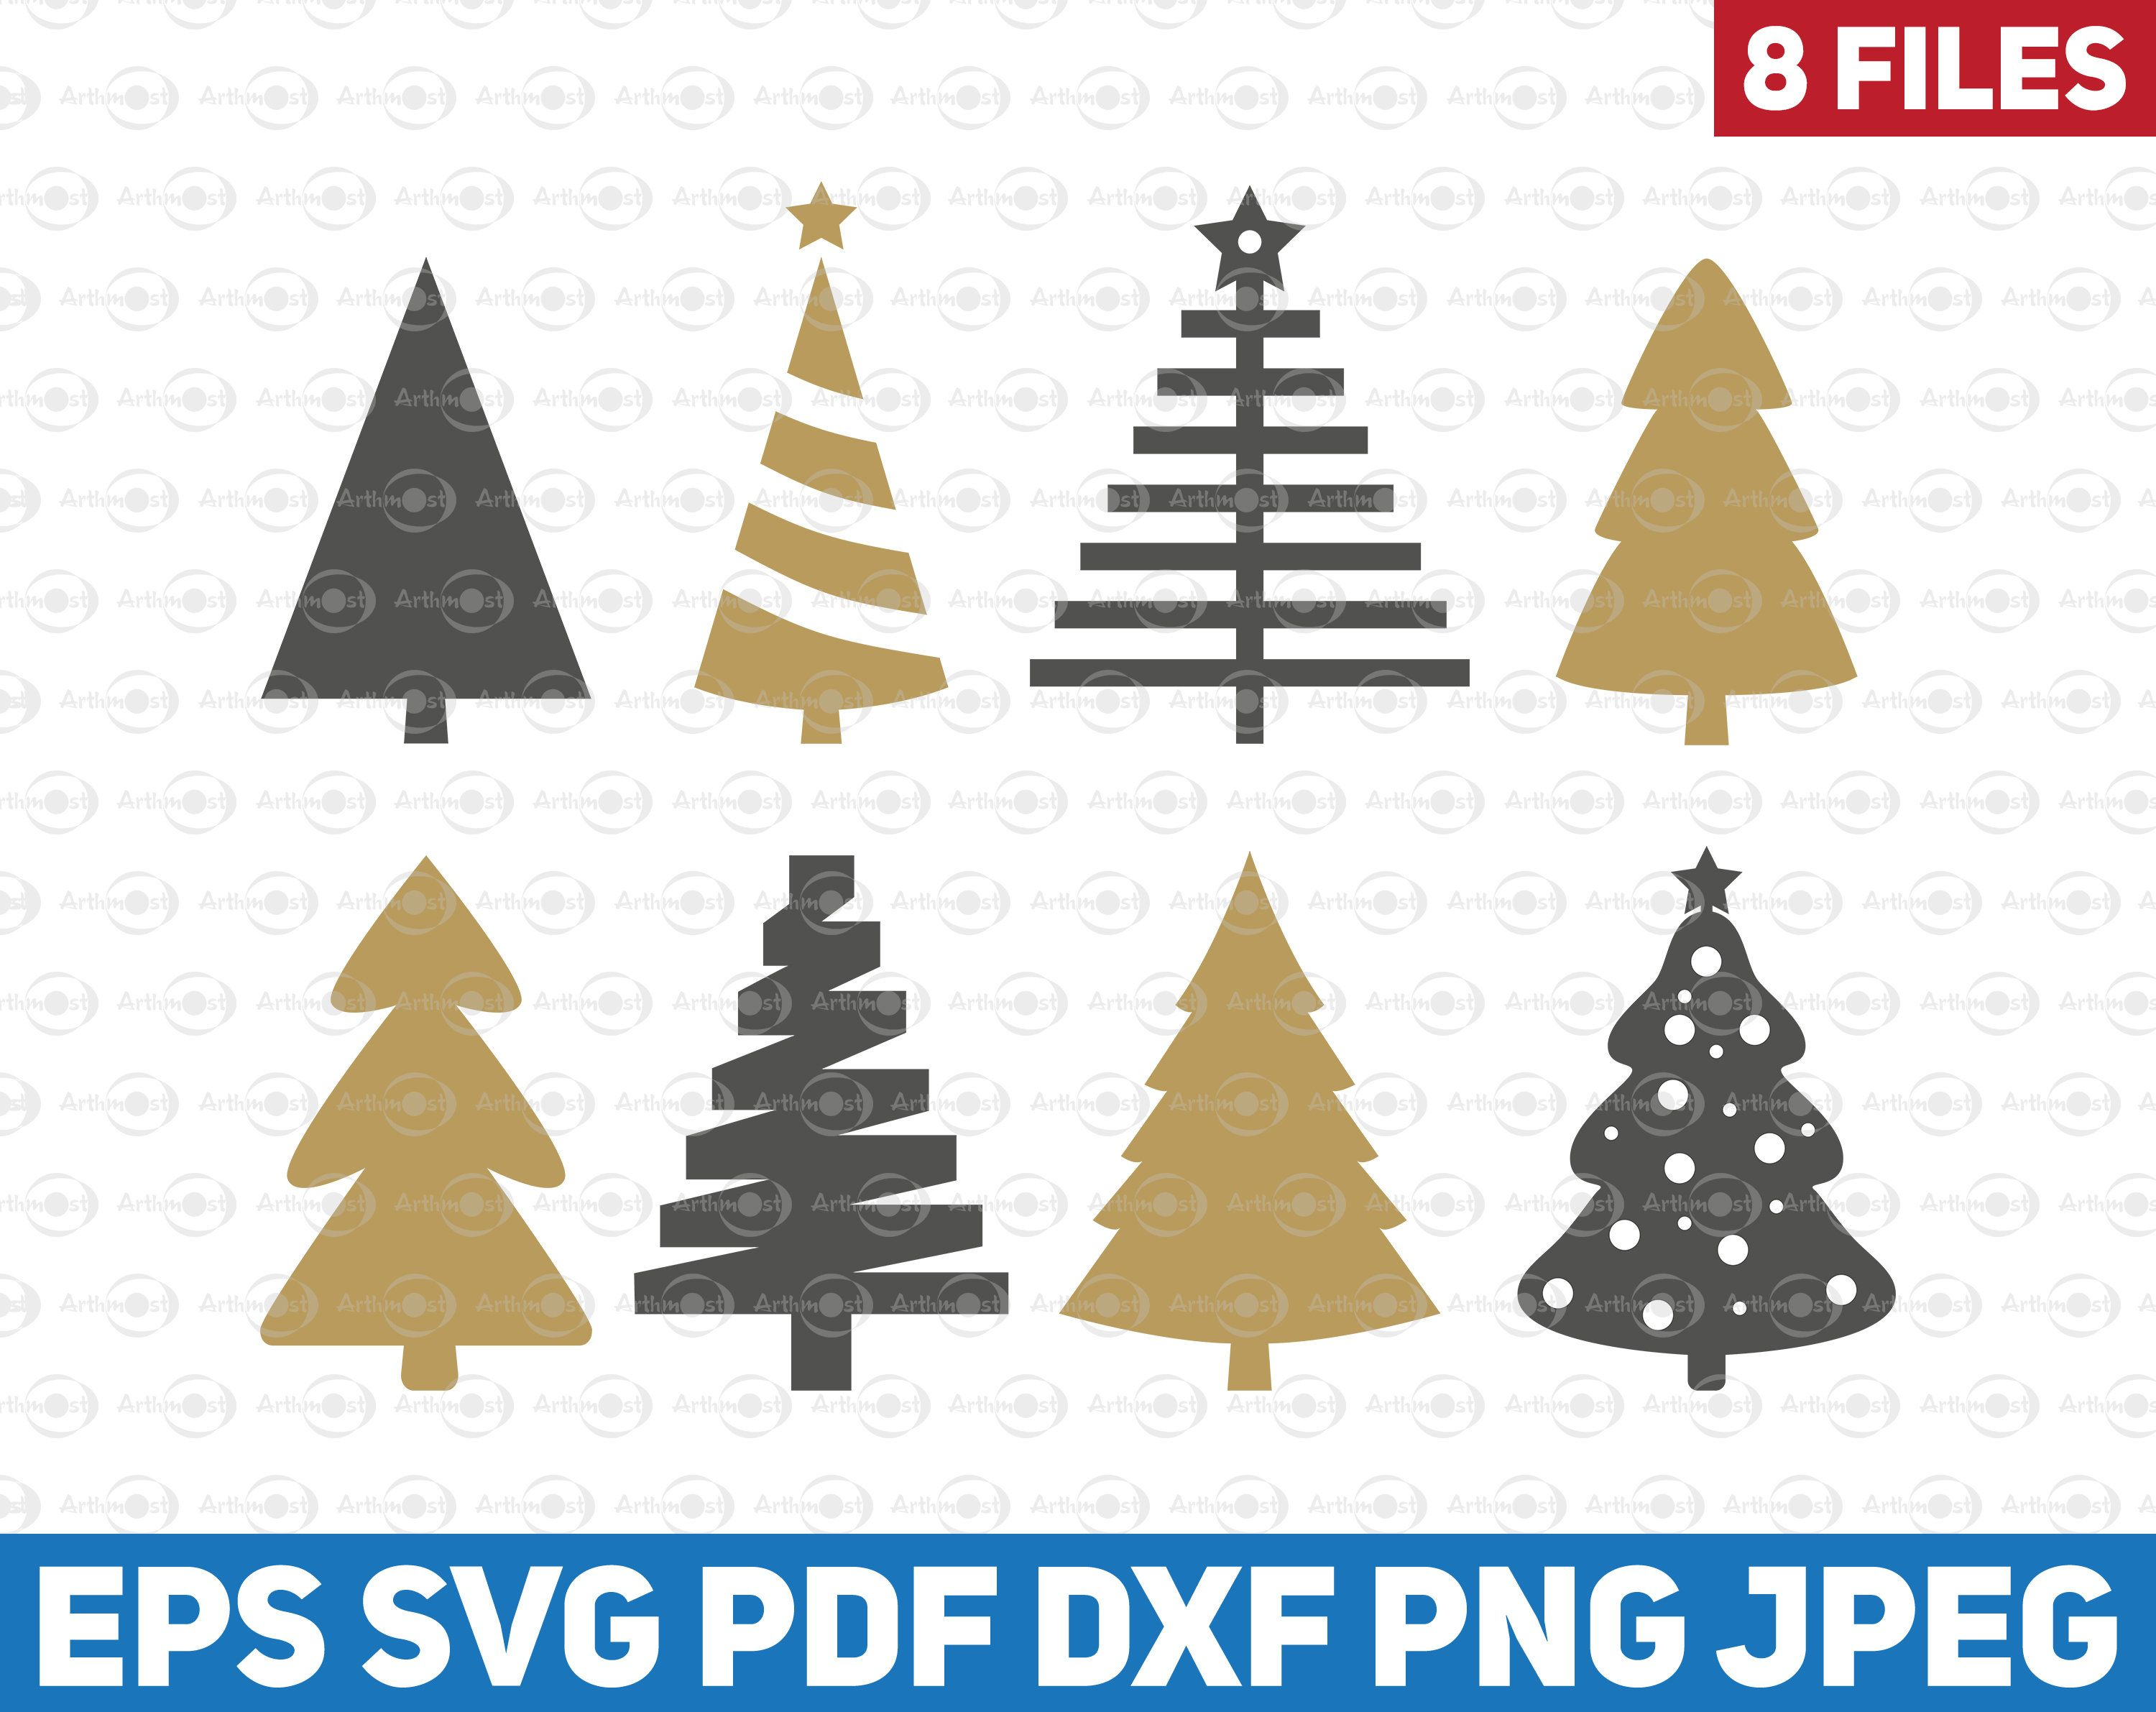 Christmas Trees Vector Clipart Svg Xmas Tree With Cutout Christmas Gift Stickers Christmas Trees Christmas Gift Sticker Pinterest Christmas Gifts Etsy Game